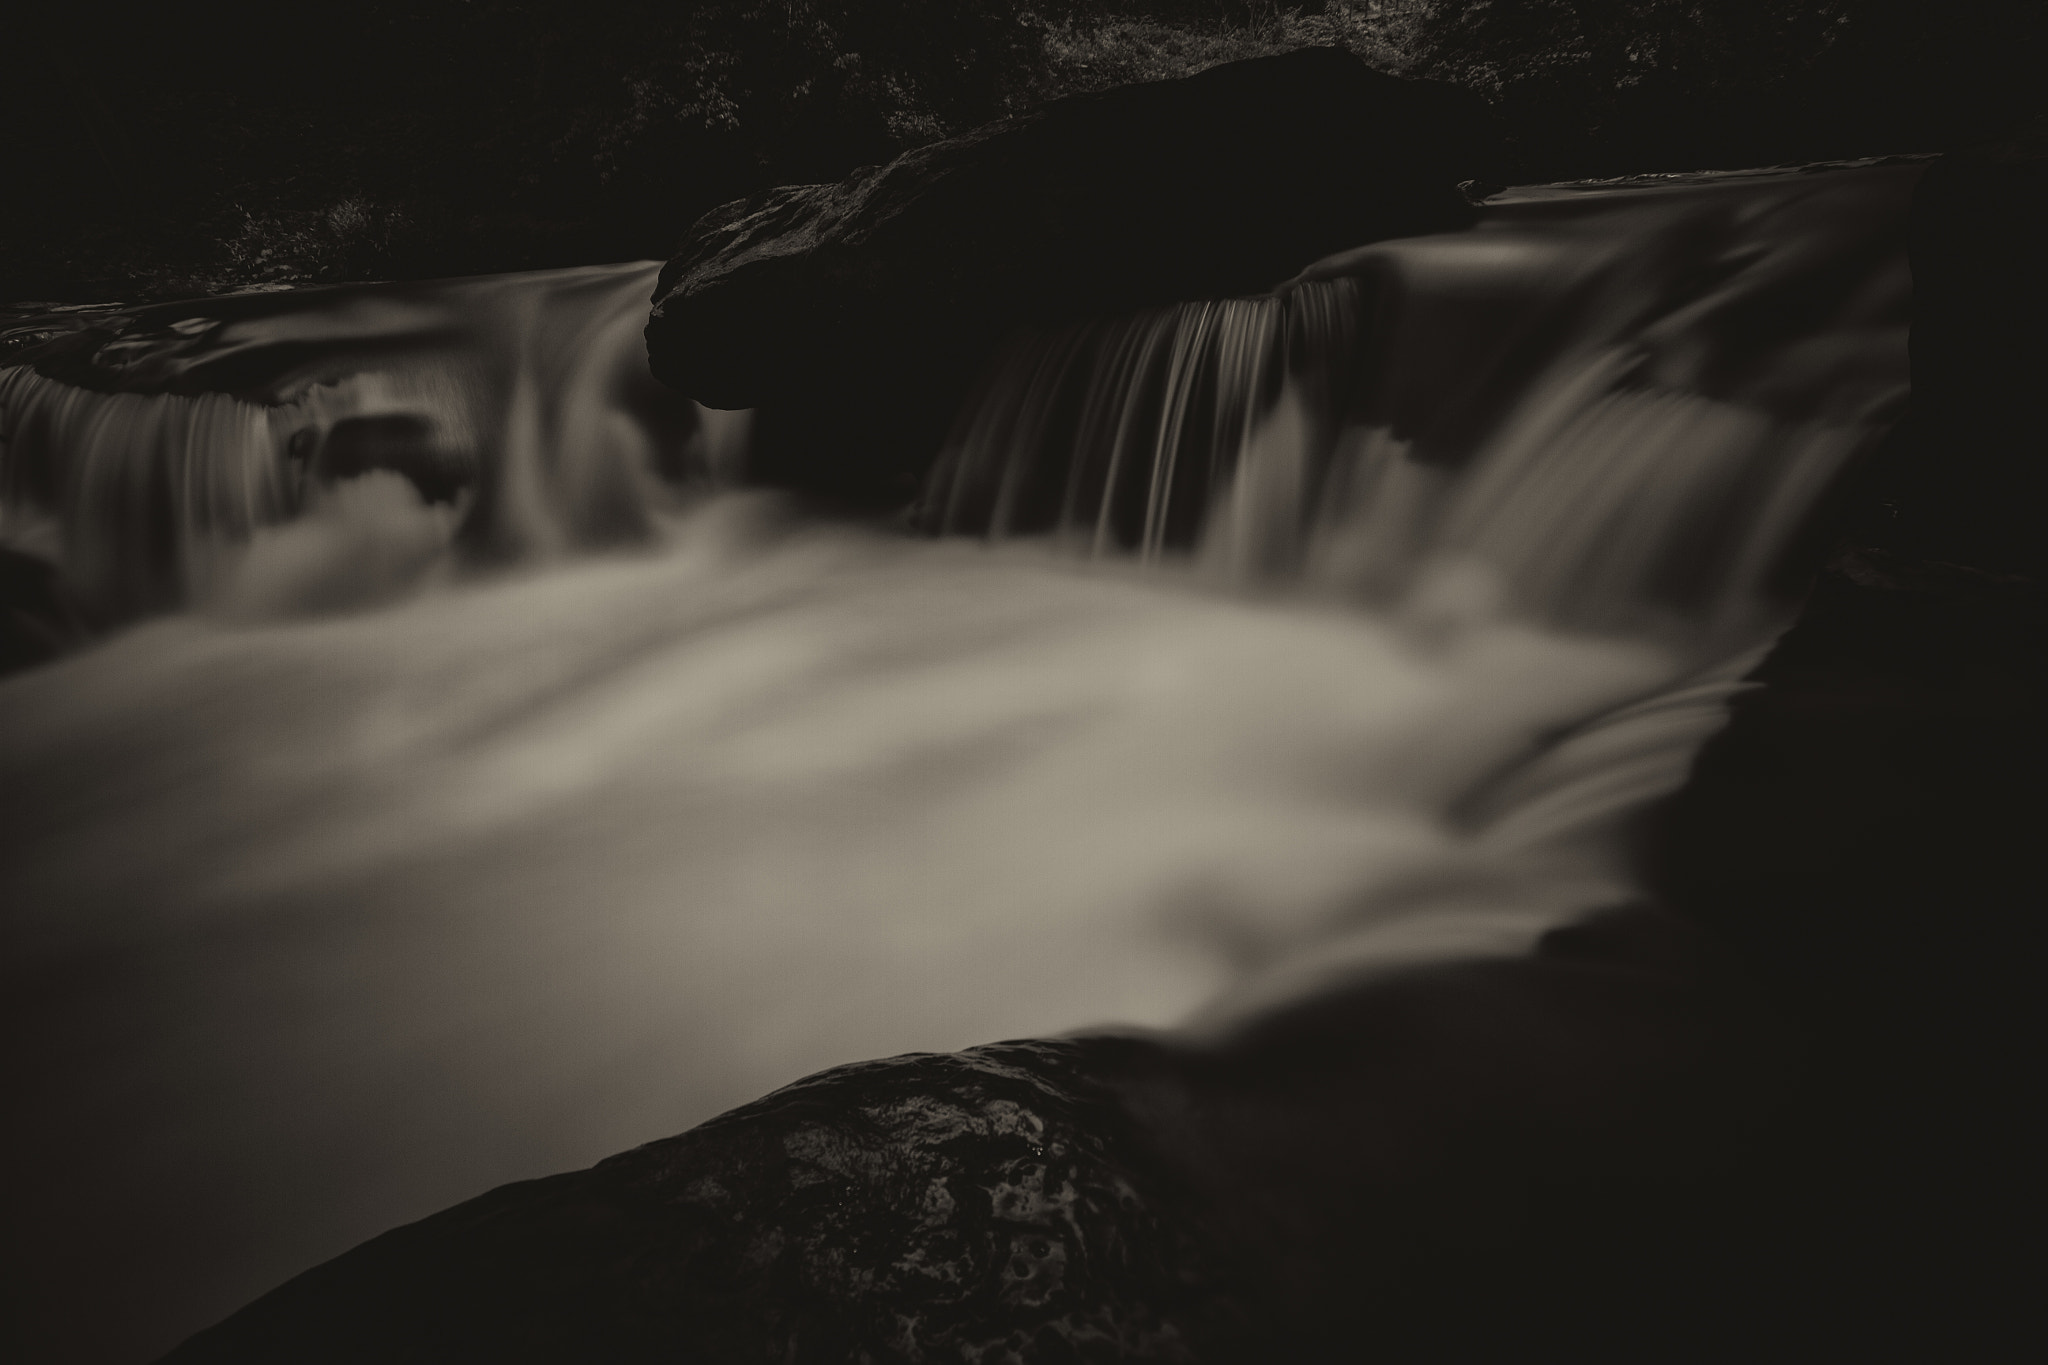 Photograph Untitled by John Nolen on 500px